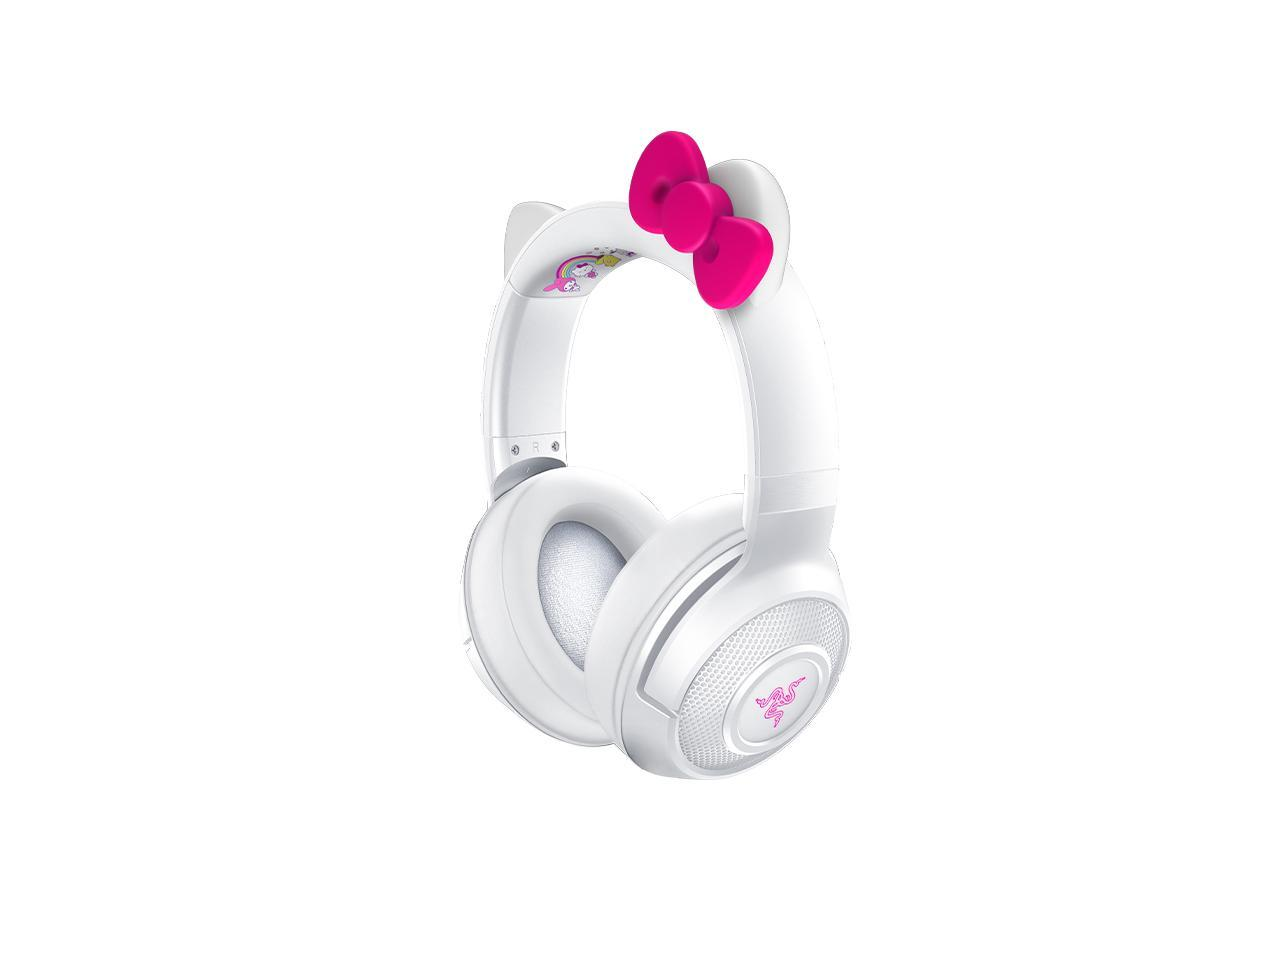 RAZER x Sanrio Characters Edition Bluetooth Wireless Headset